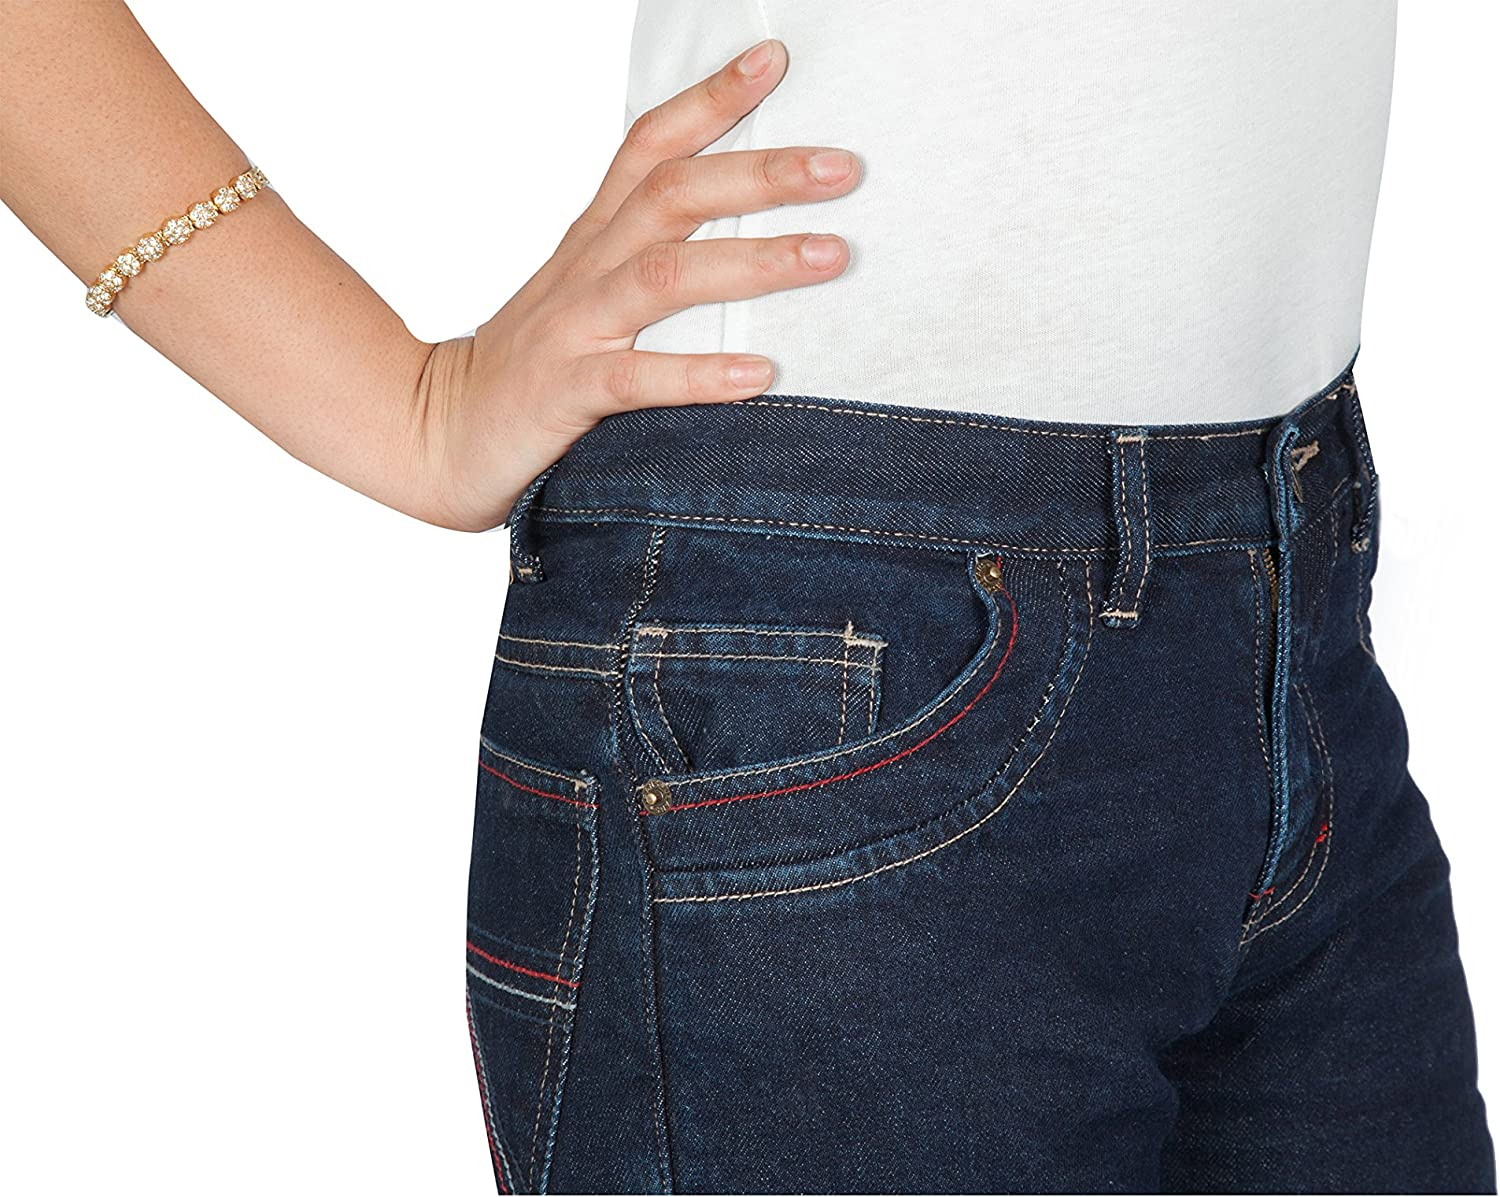 OneDayMore Hispar Pro Straight Fit Aramid Lined Ladies Motorcycle Jeans 8102.